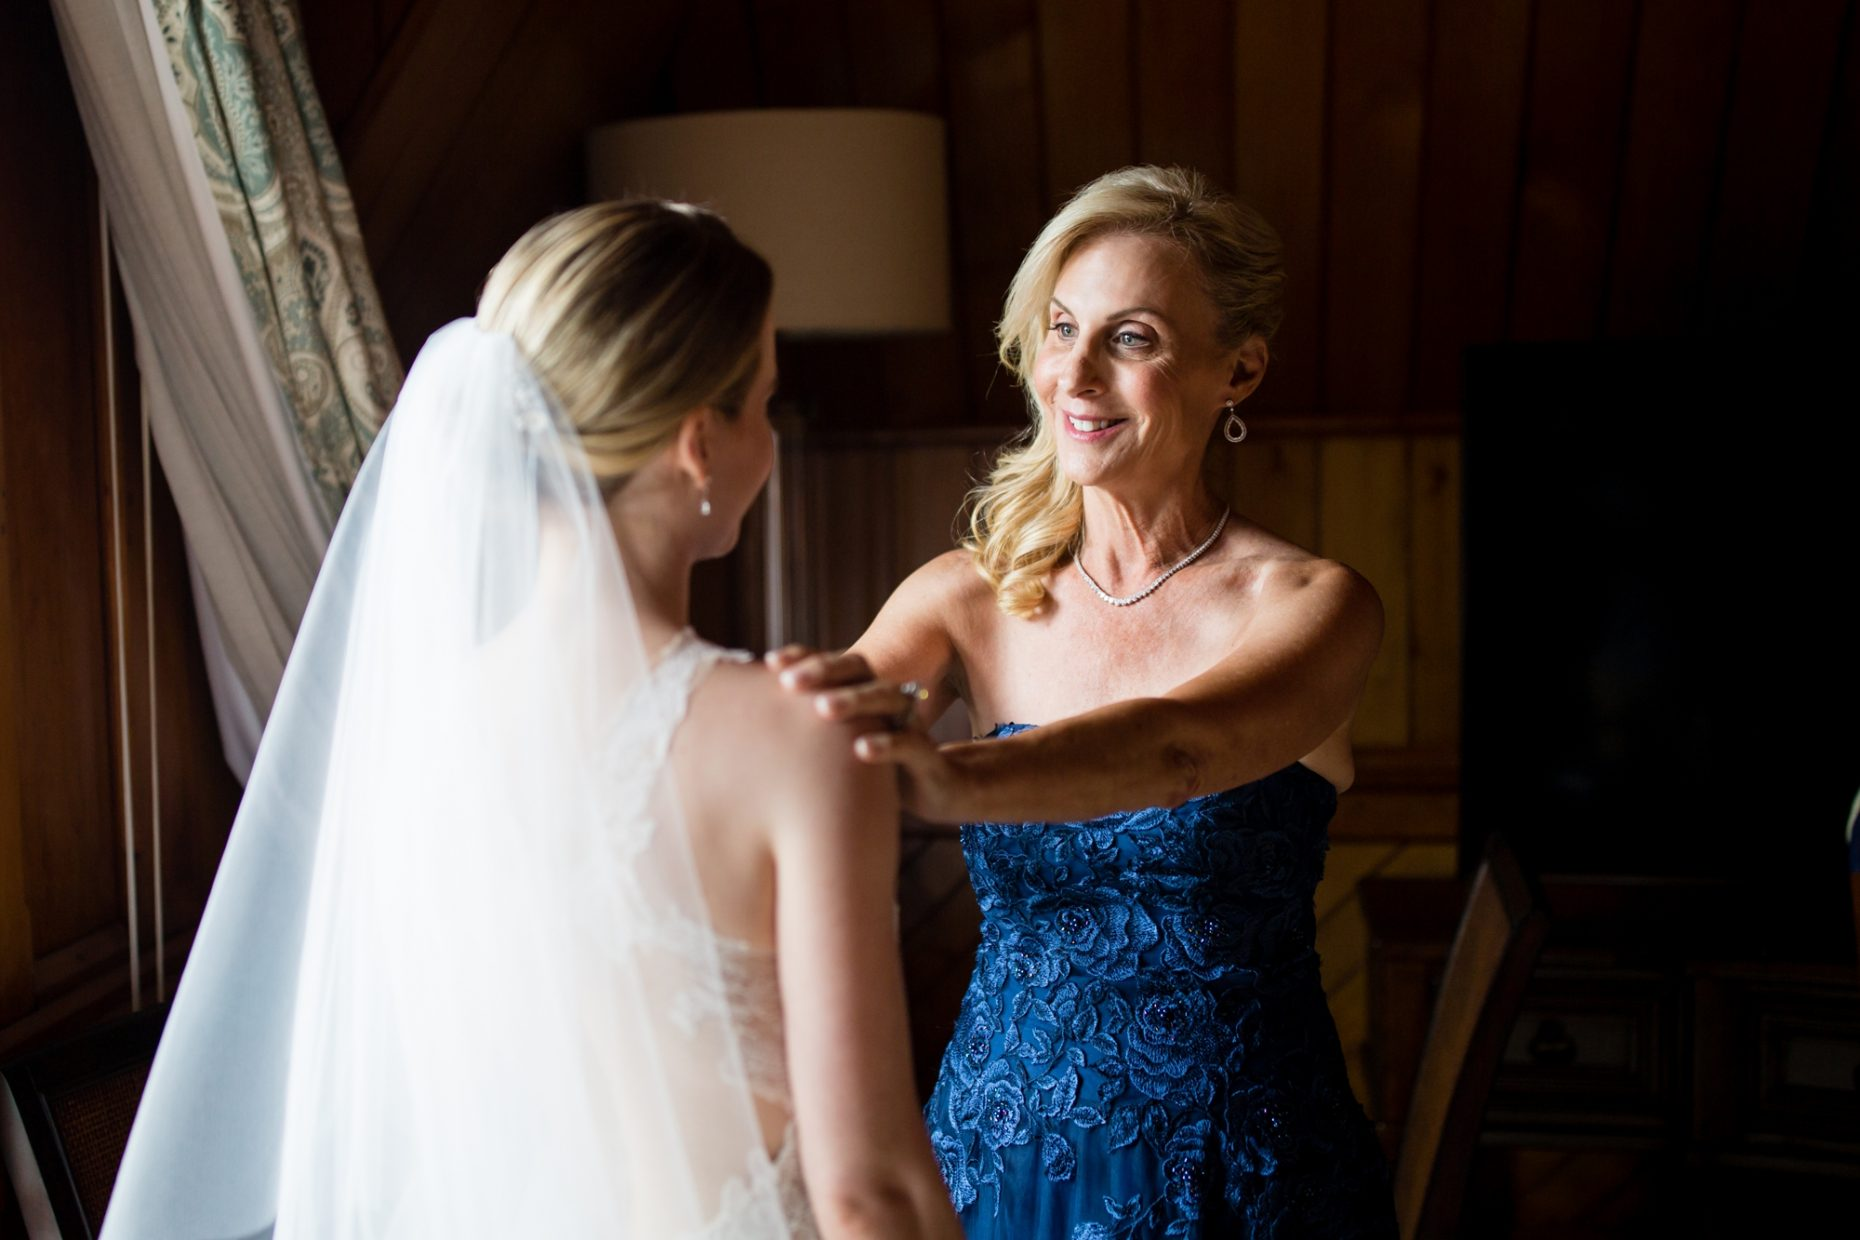 mother of bride helps bride get dressed on her wedding day